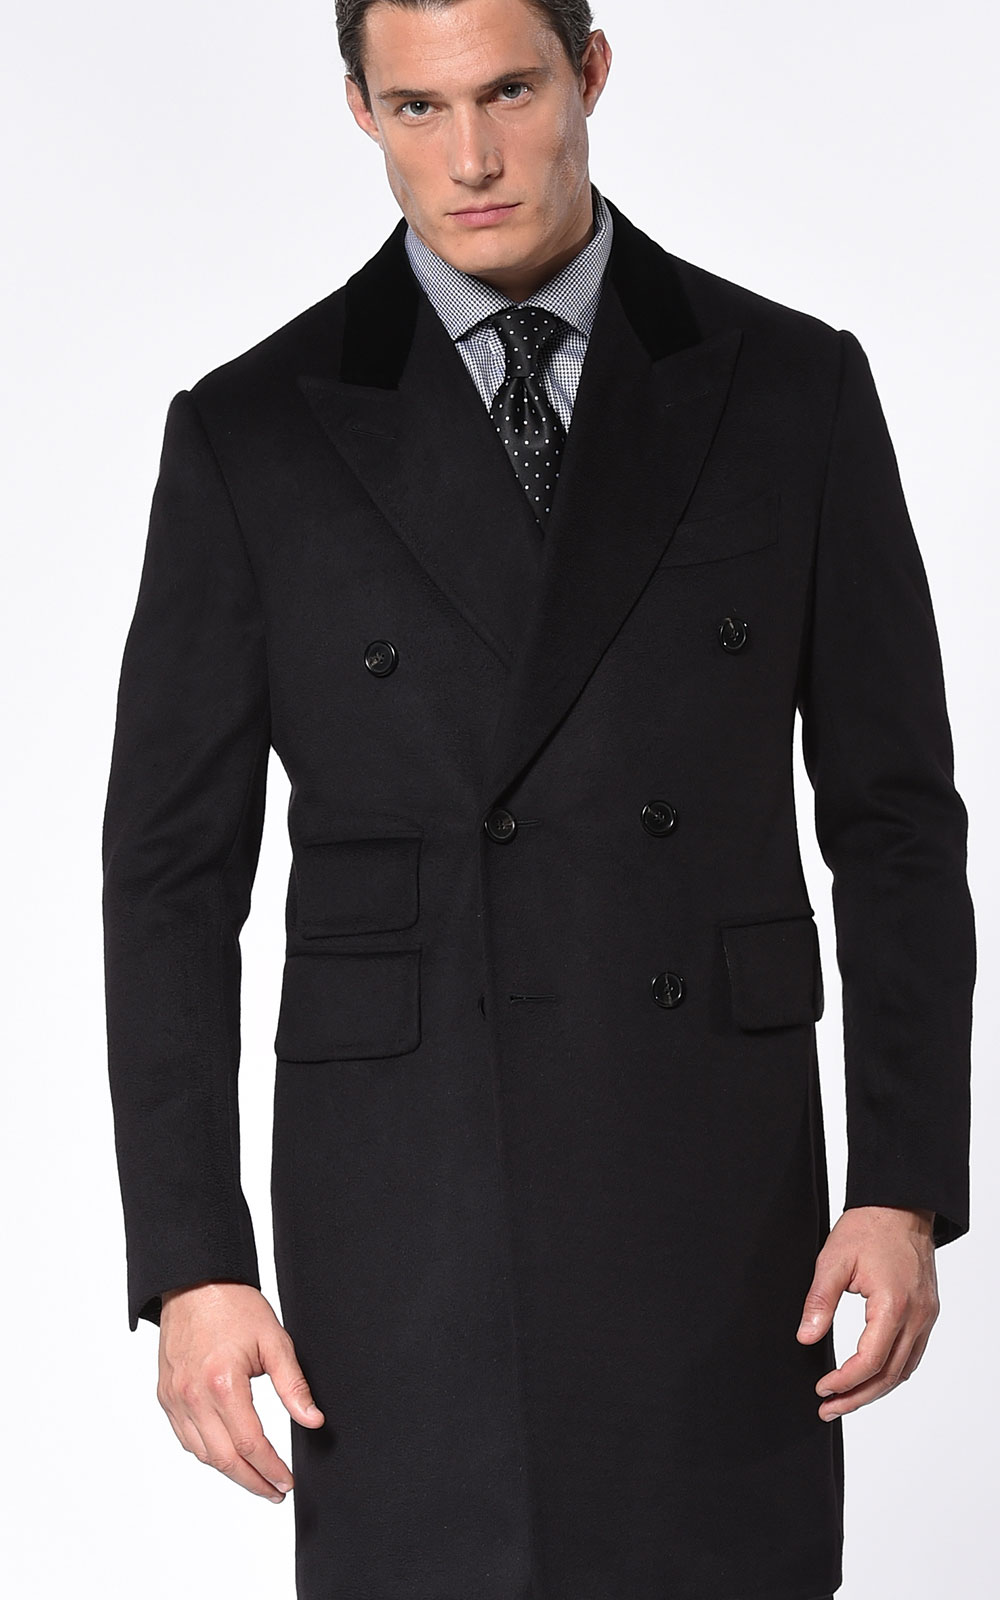 BLACK CLASSIC DOUBLE BREASTED OVERCOAT